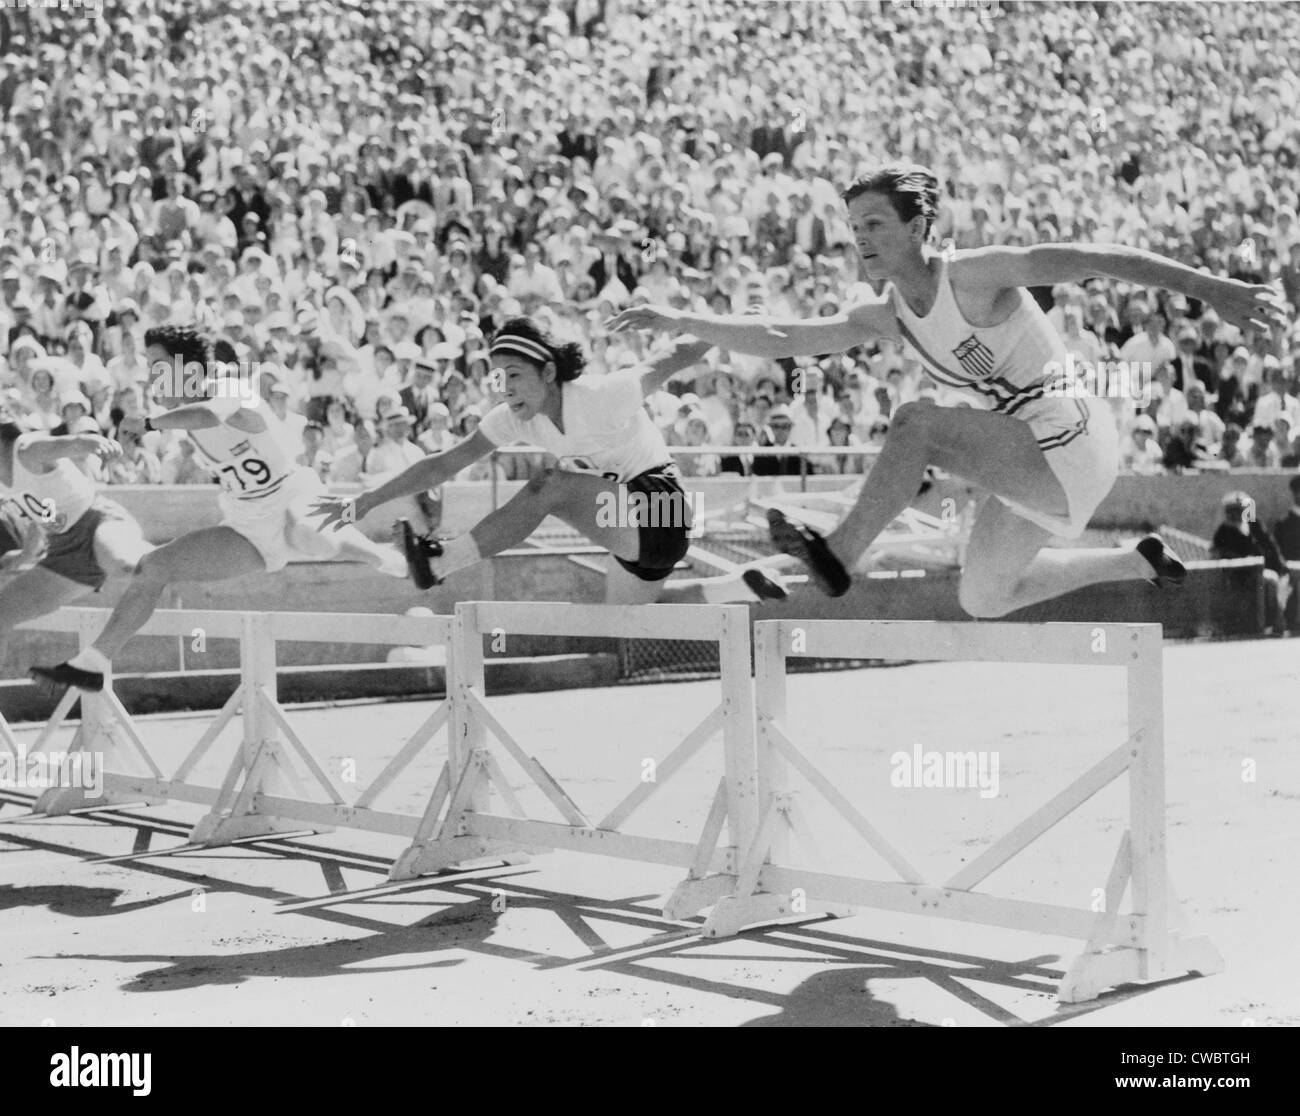 Mildred 'Babe' Didrikson, (1911-1956), running in the first heat of the 80-meter hurdles, at the 1932 Olympics - Stock Image